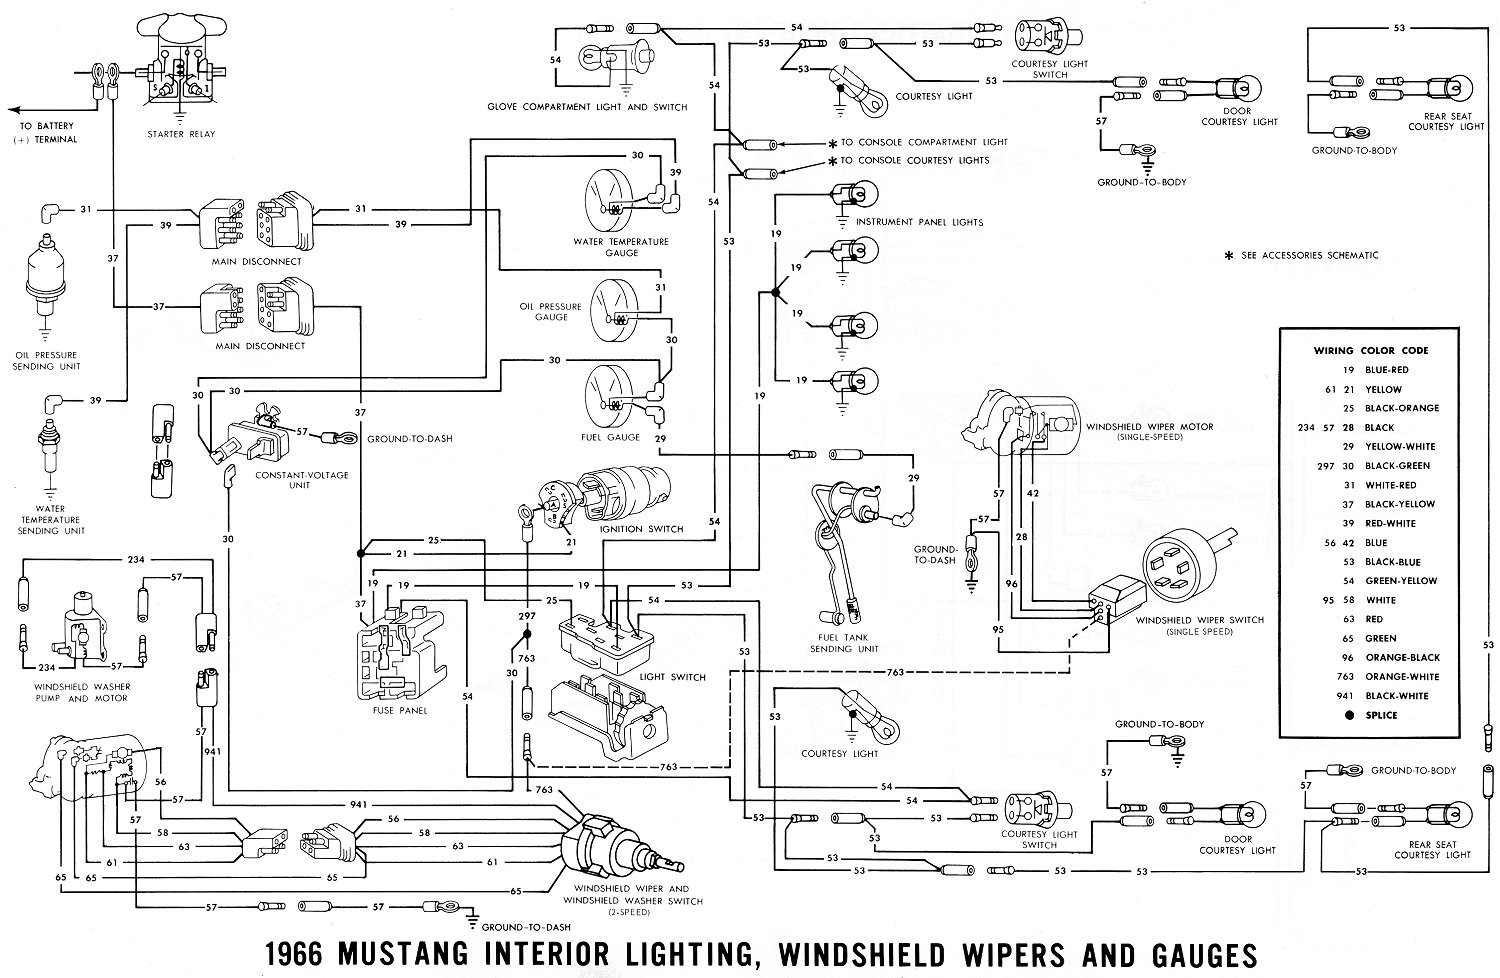 Windshield Wiper Wiring Diagram Ford 1969 Start Building A F550 Engine Mustang Ignition Switch Schematic Rh Theodocle Fion Com Control Module Location